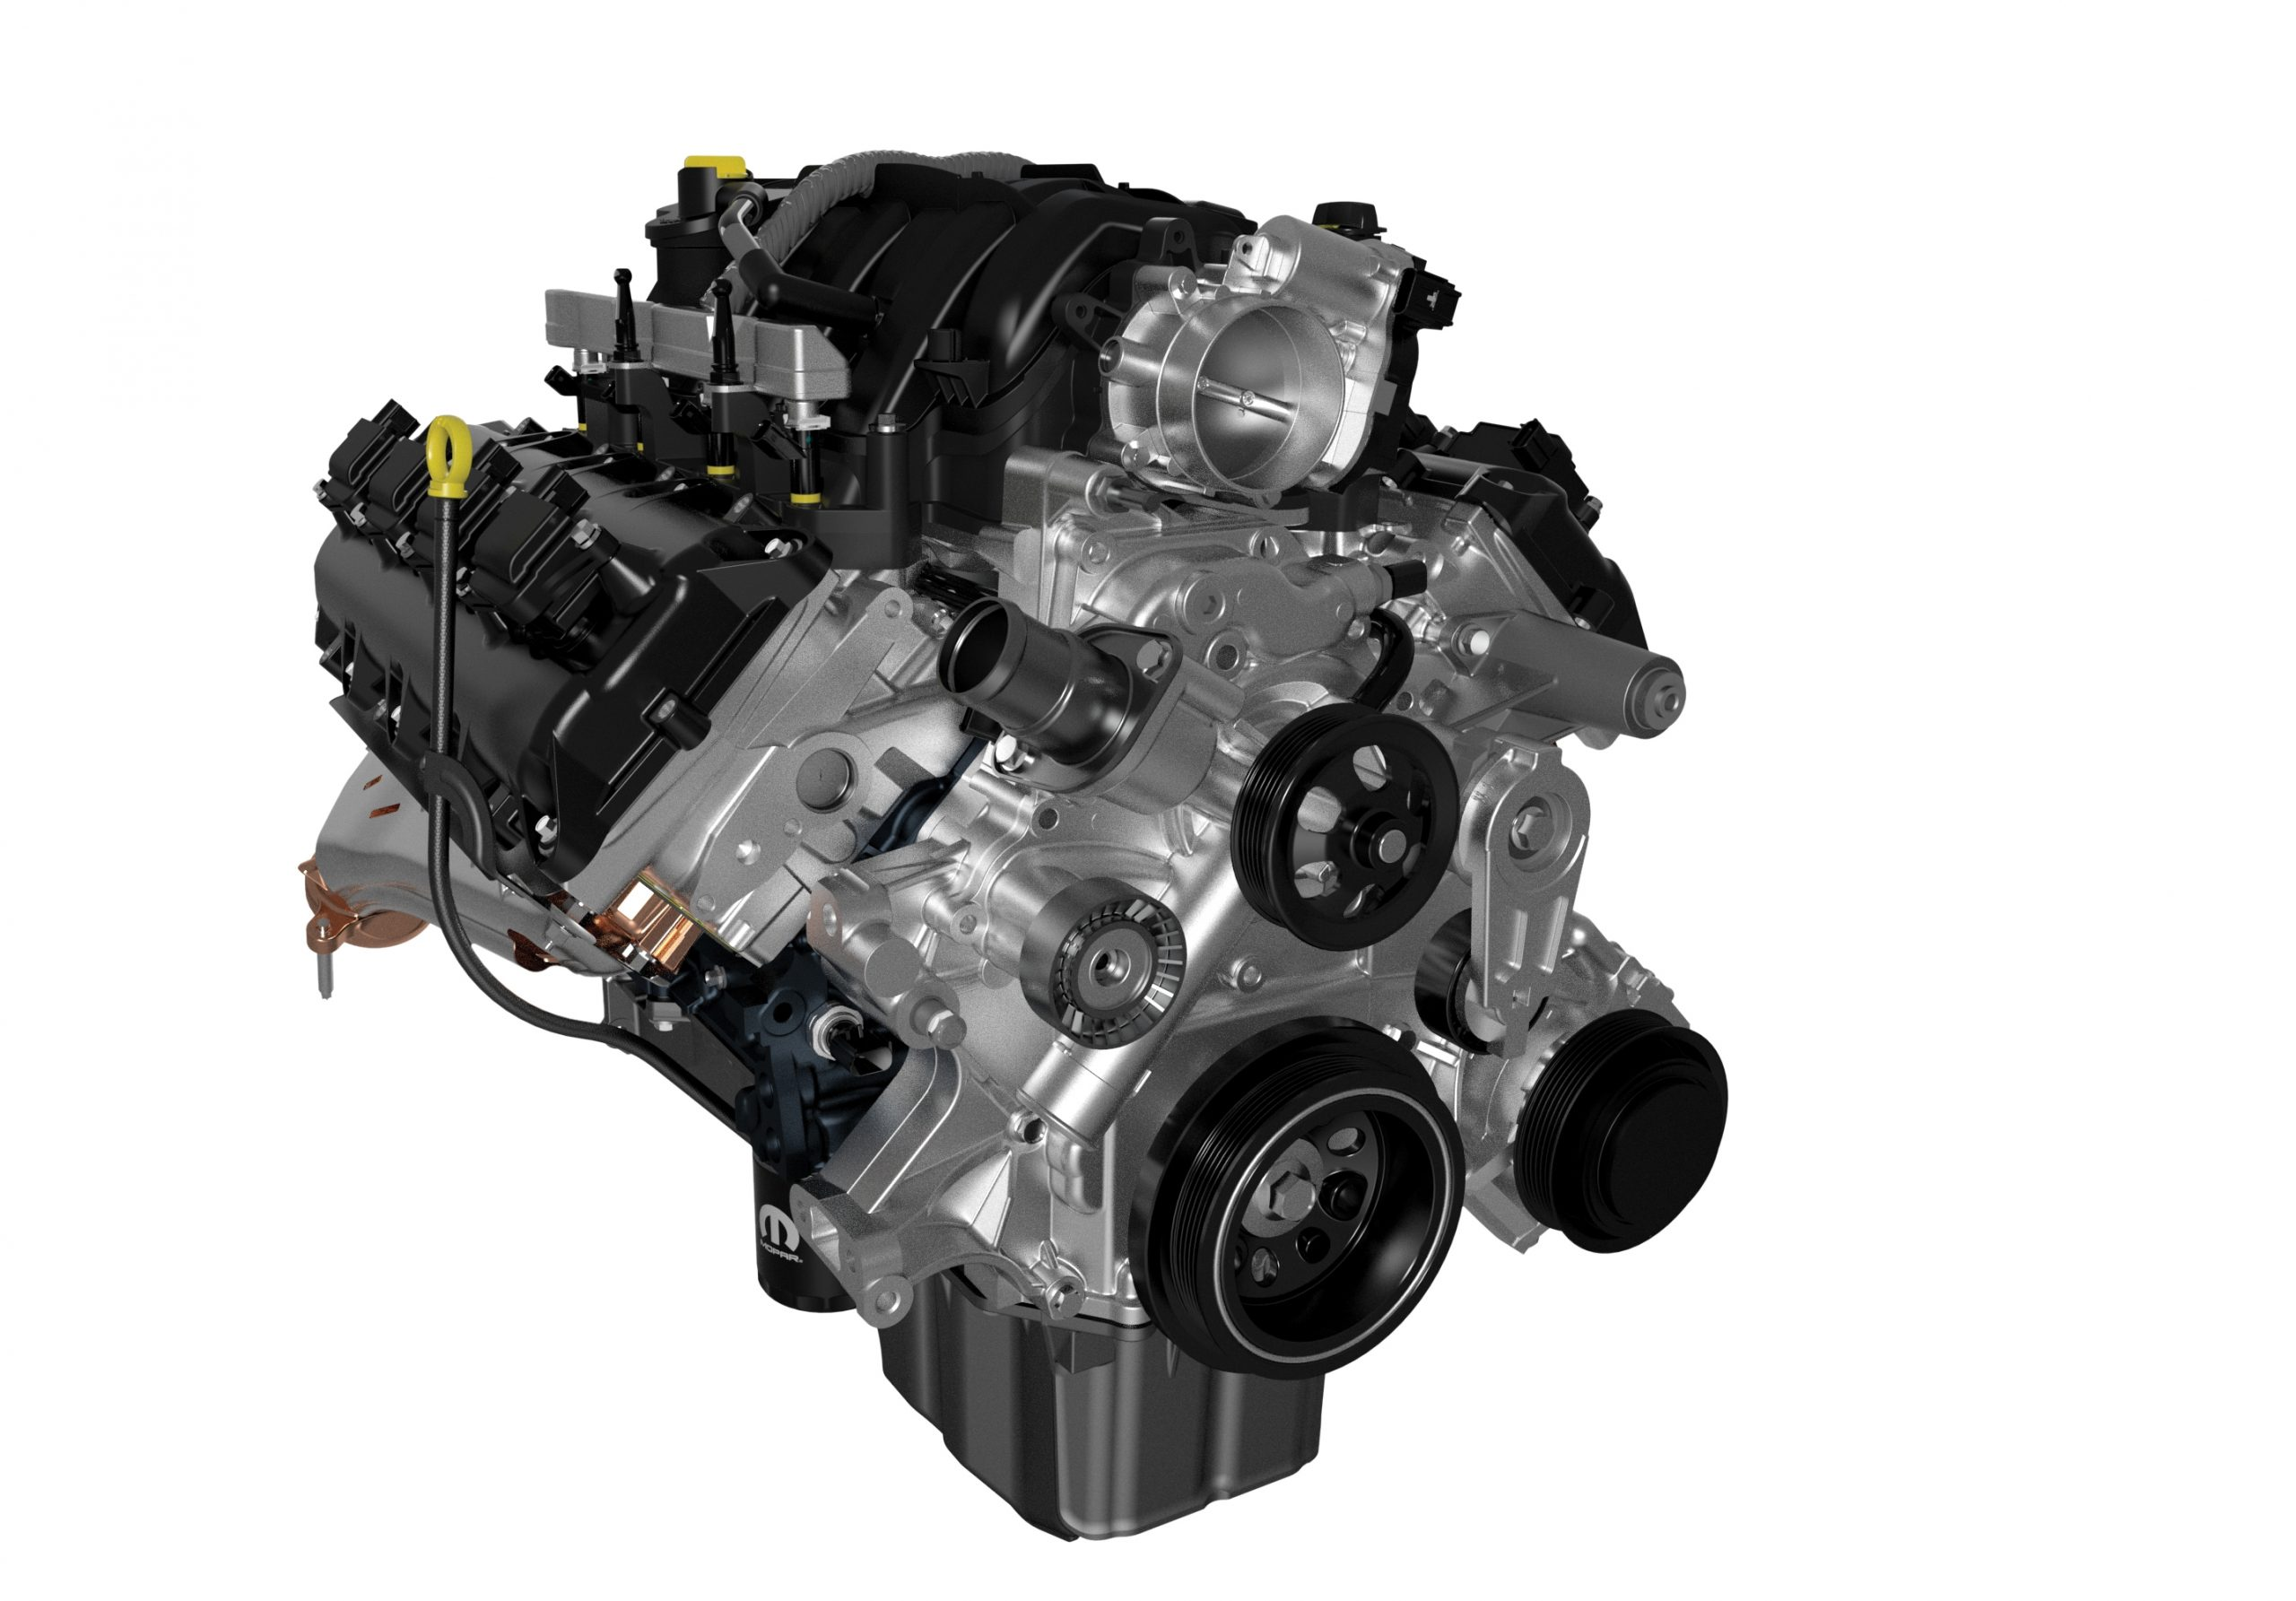 5.7-liter Crate HEMI® V-8 engine